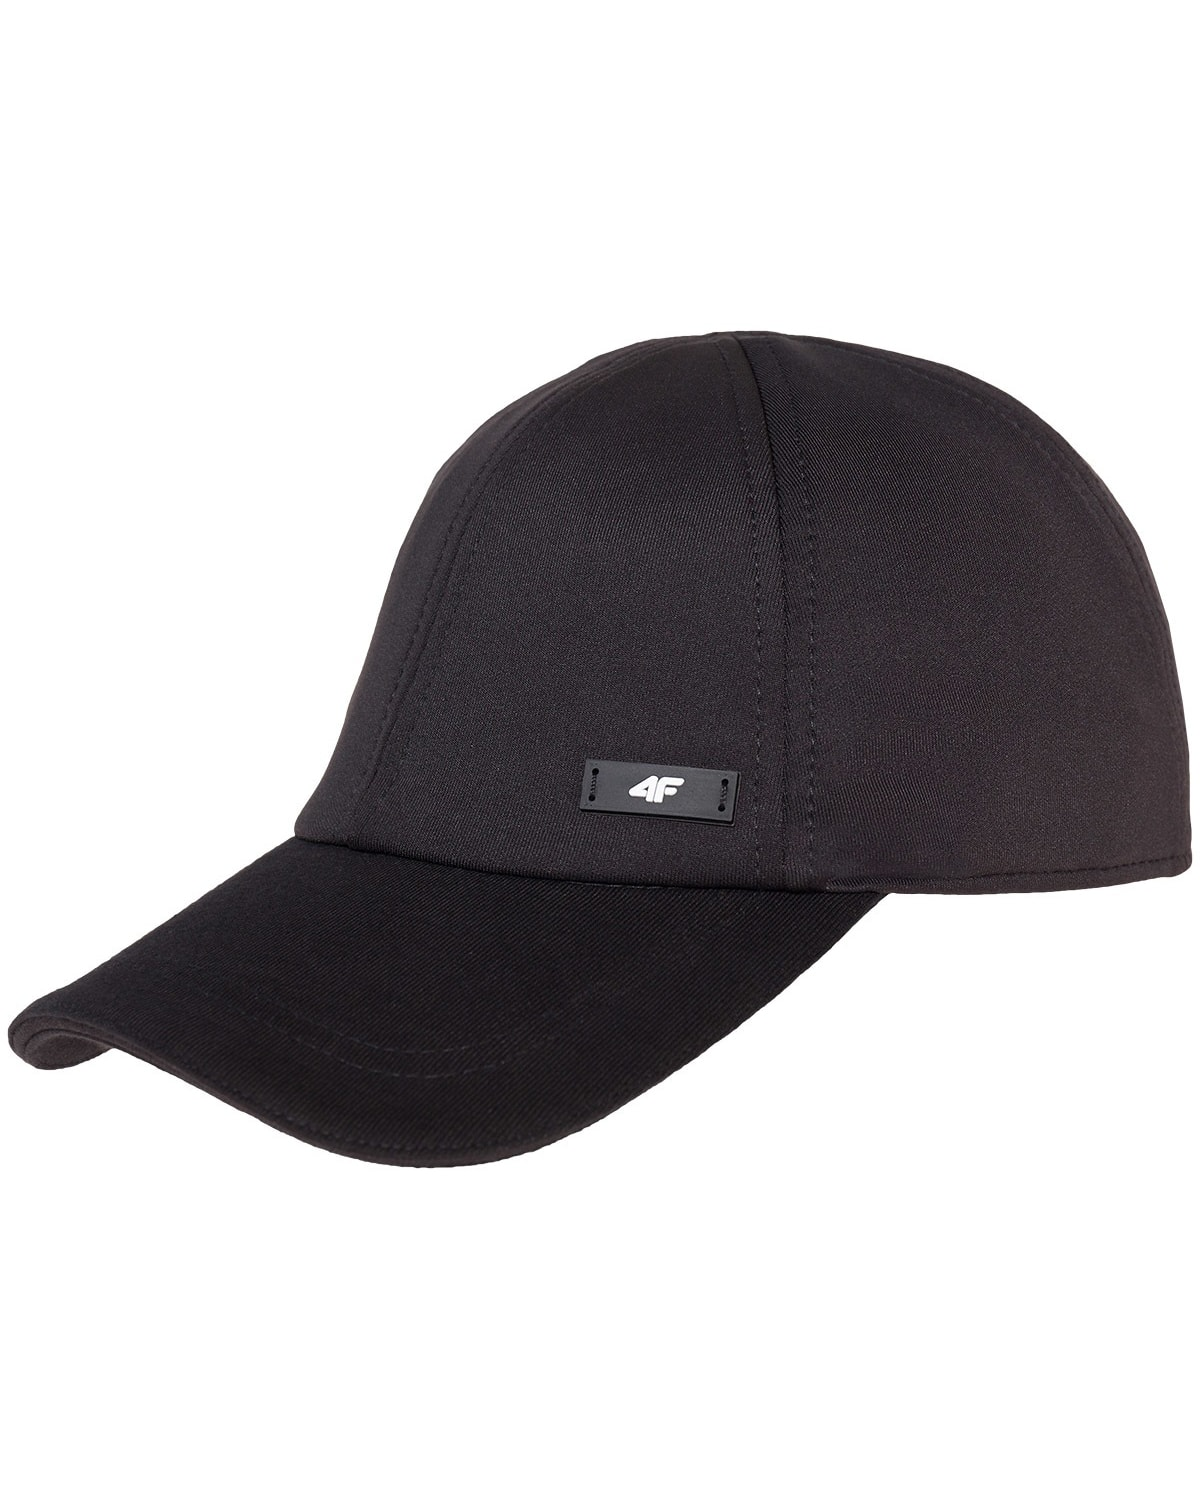 4F Men's Cap – Black